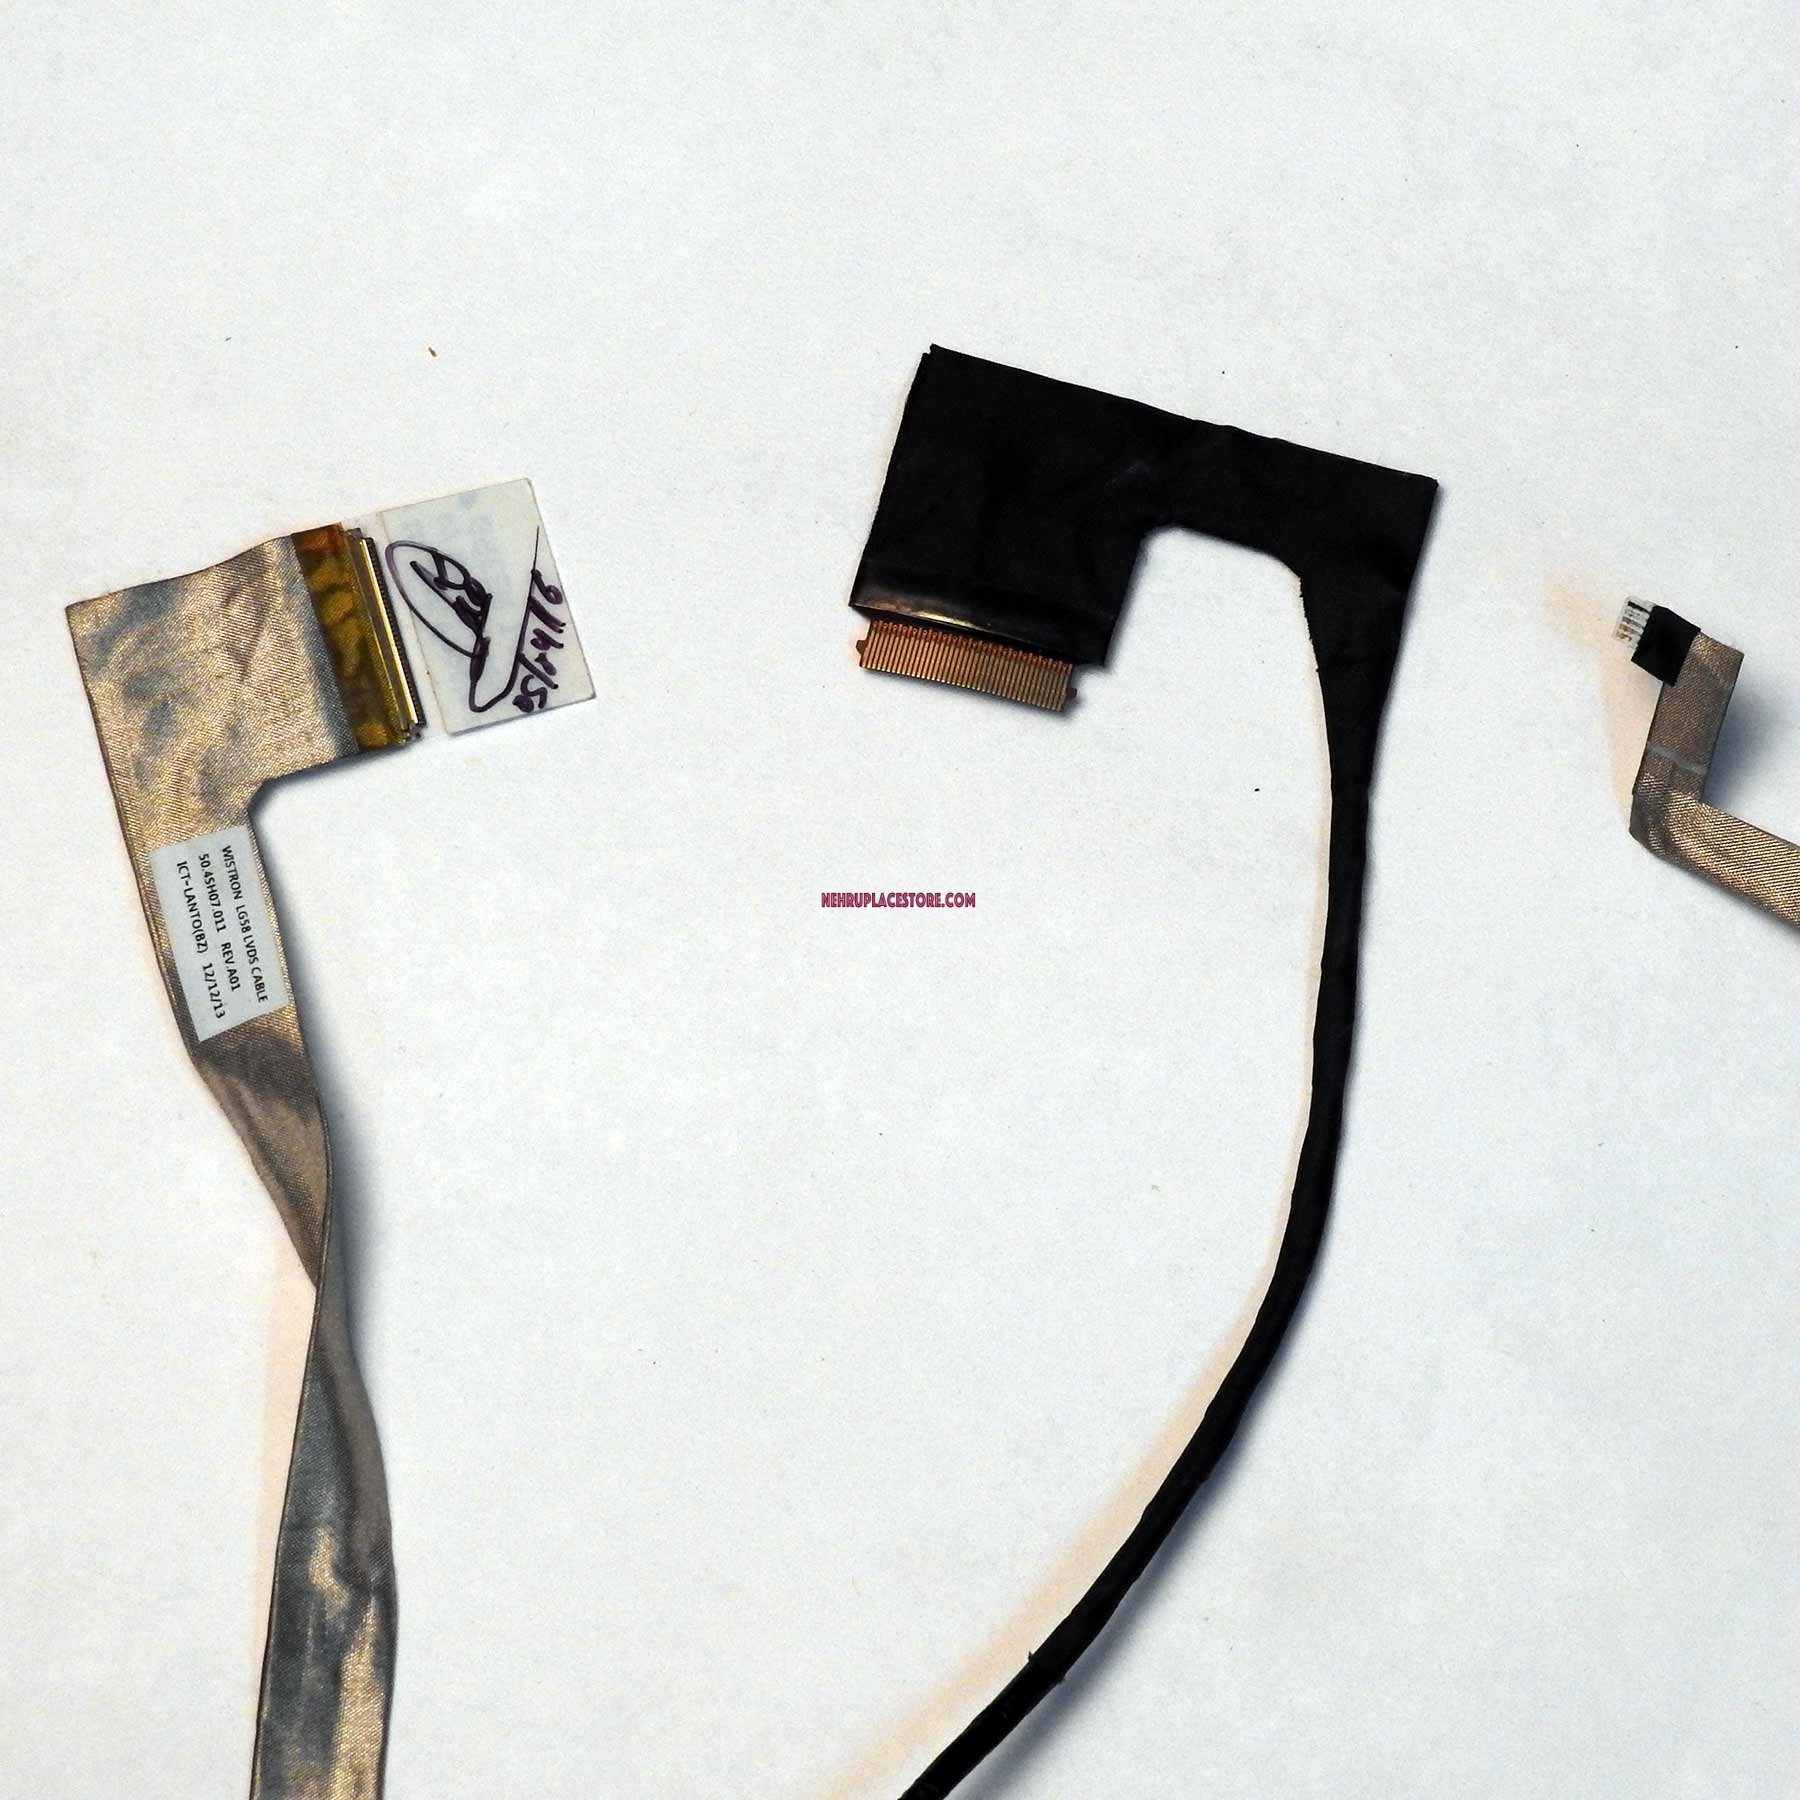 New G580 50 4sh07 001 Lvds Cable For Lenovo G580 G485 Lcd